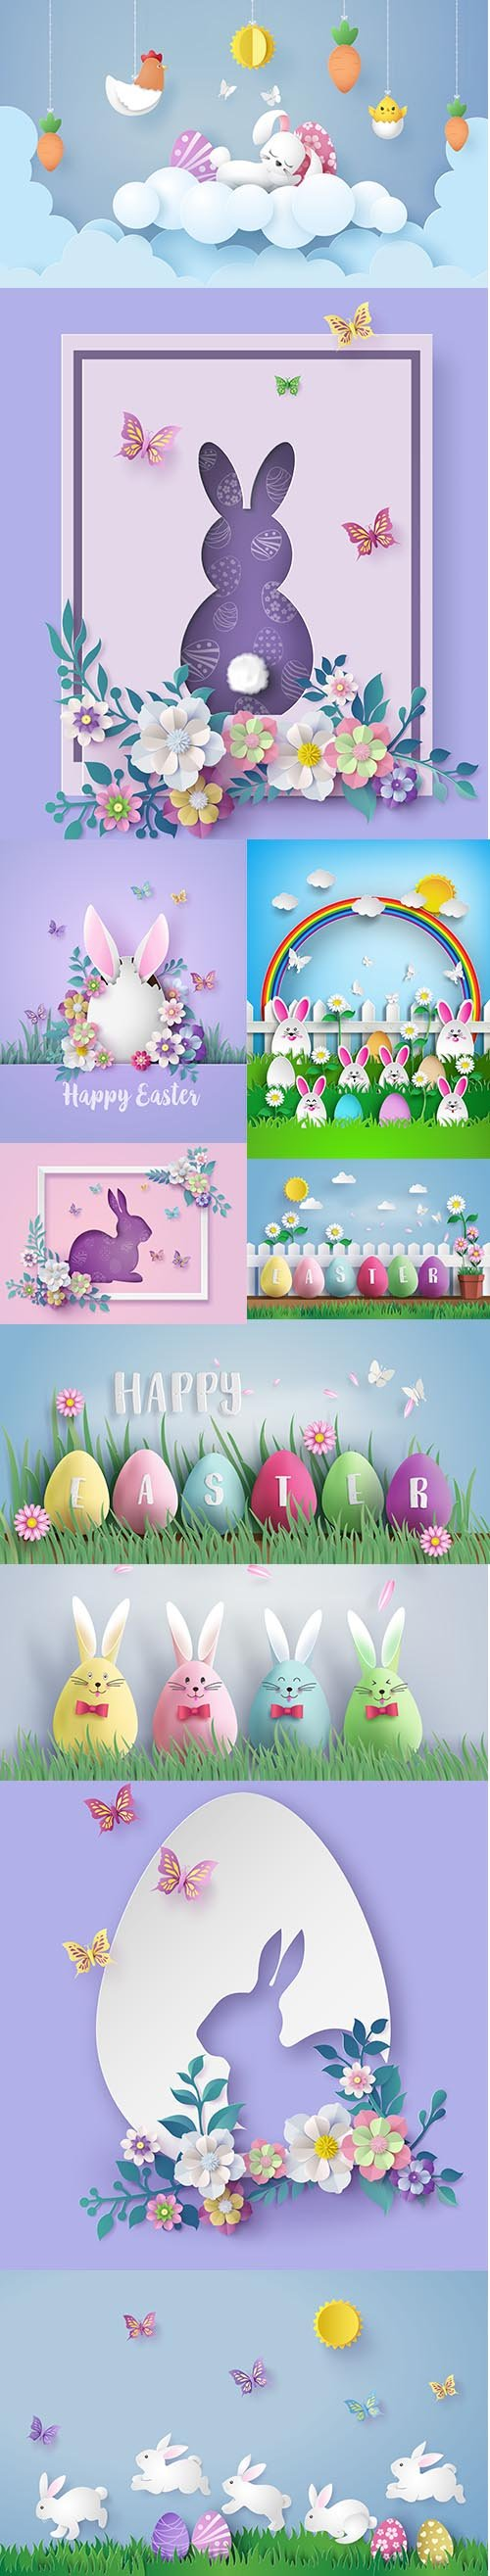 Easter Day Beautiful Illustration Vector Set